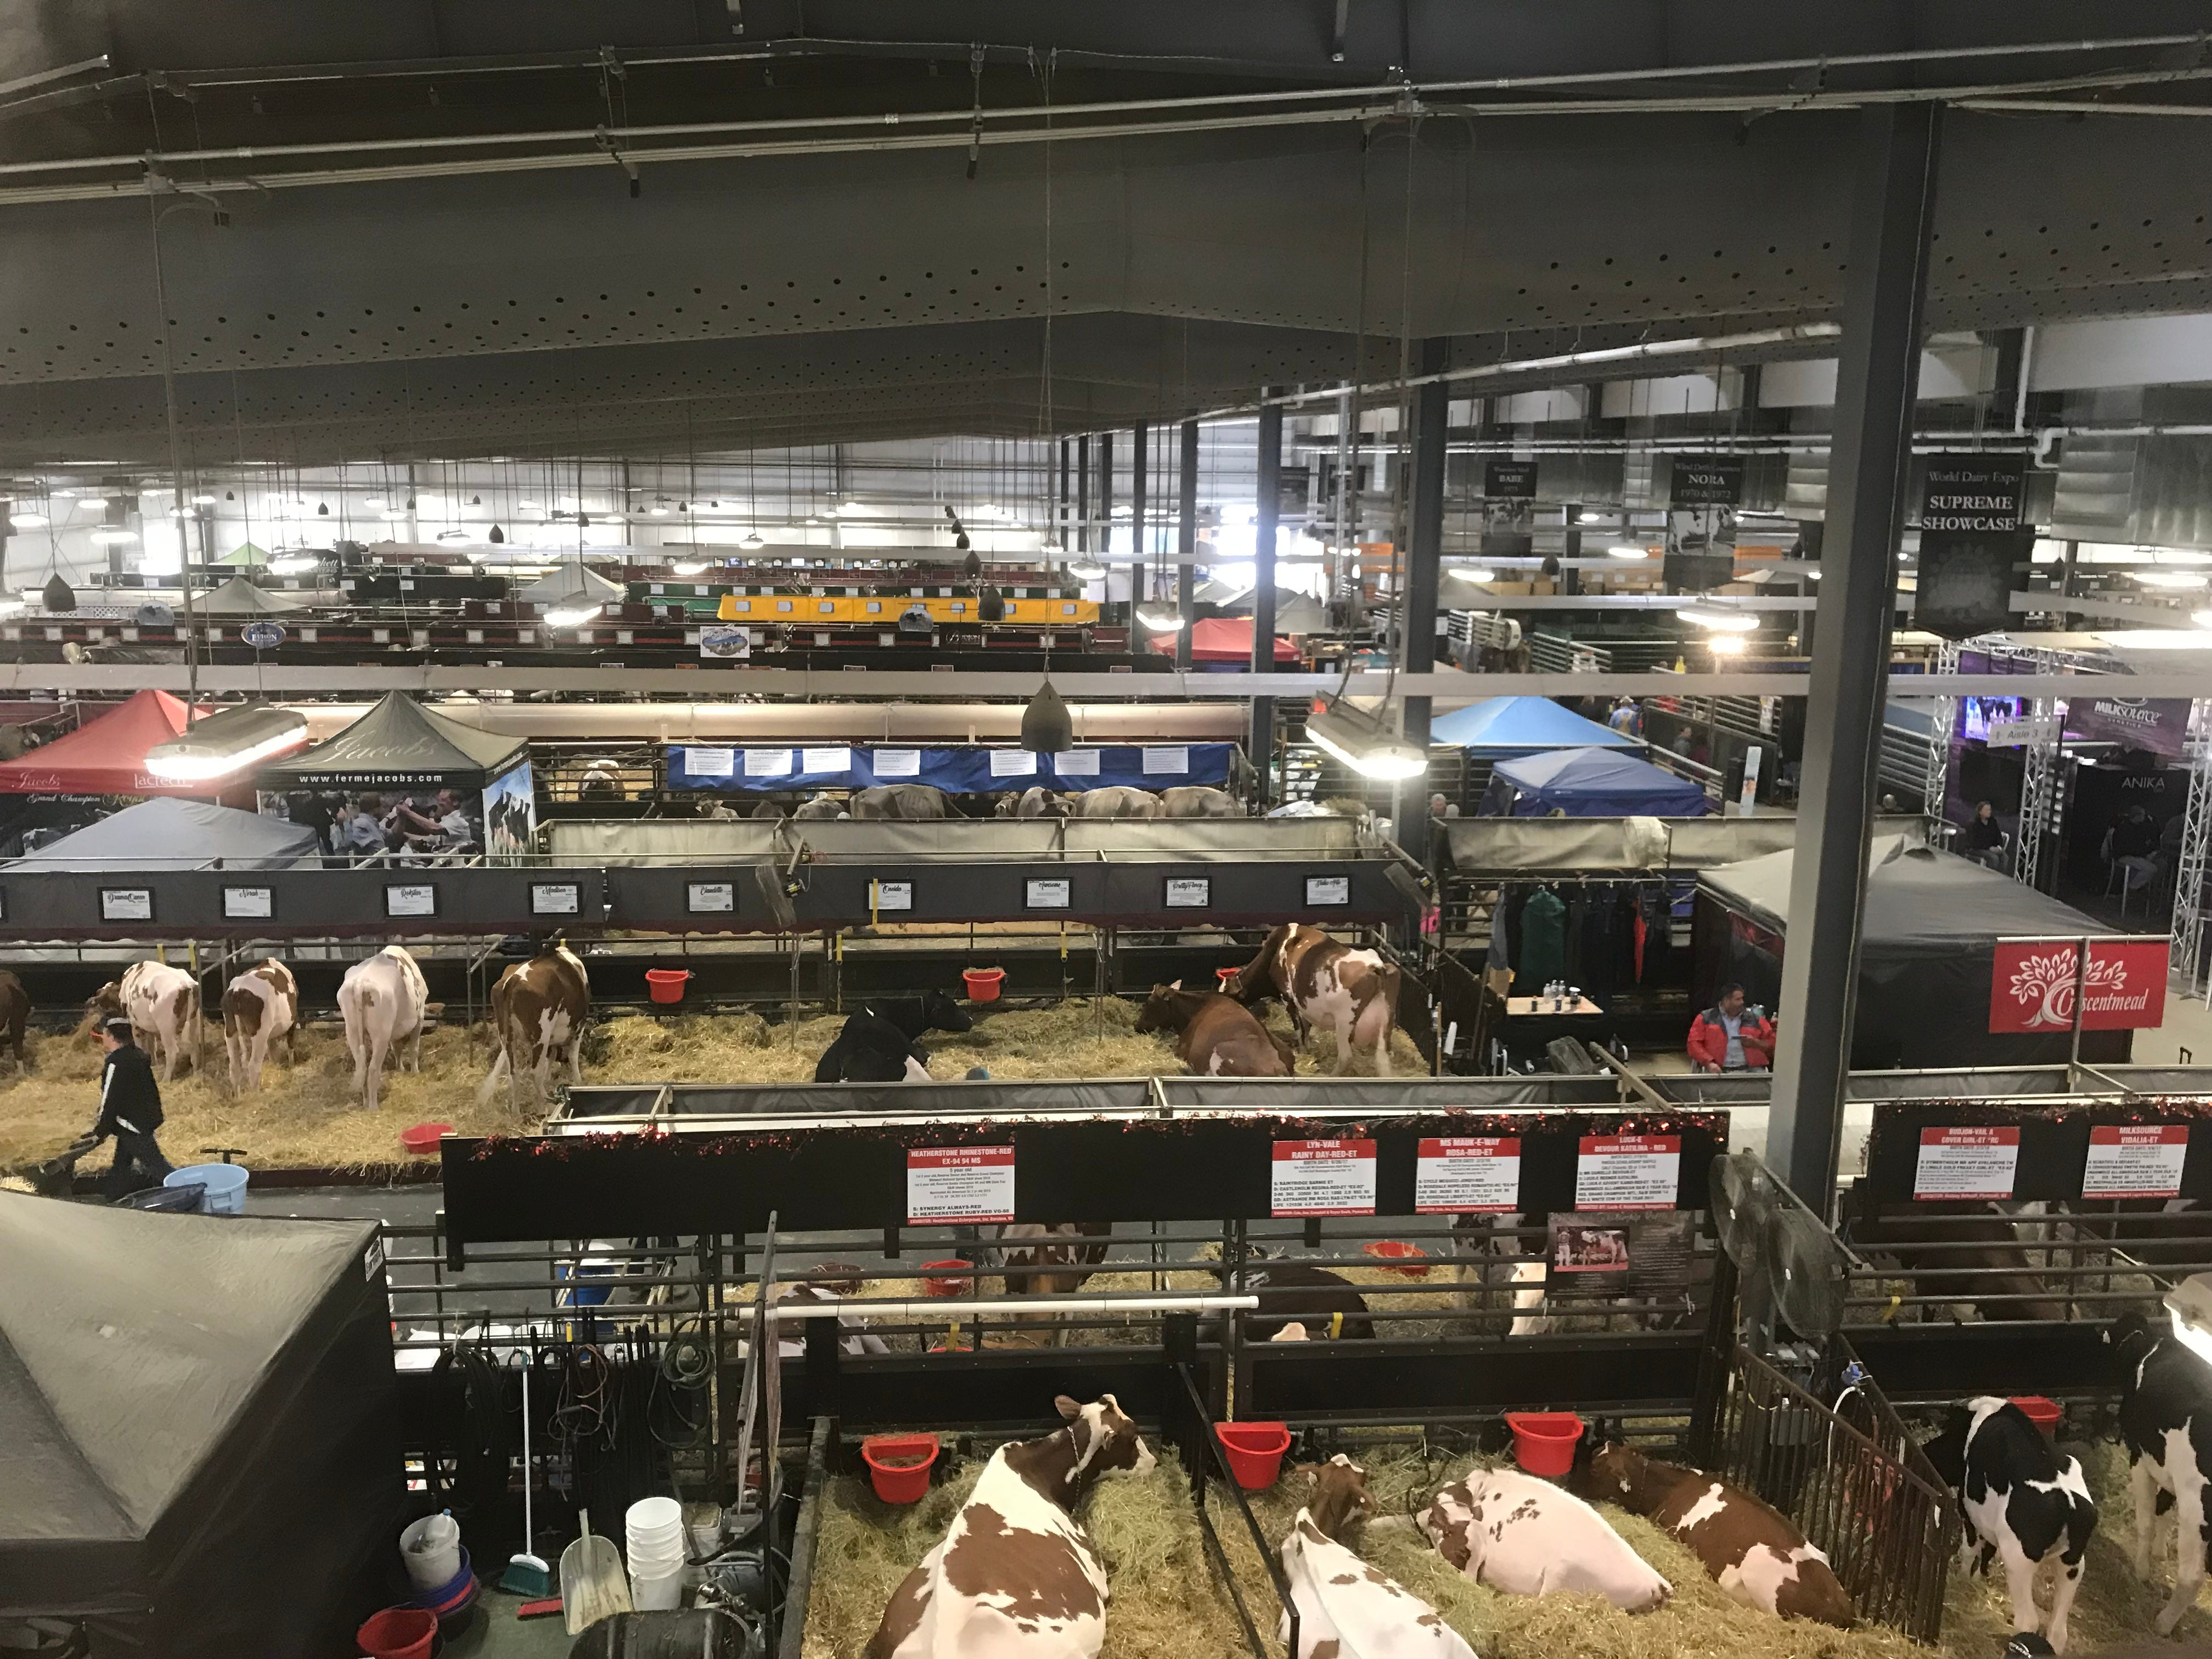 A birds-eye view inside the New Holland Pavilion.